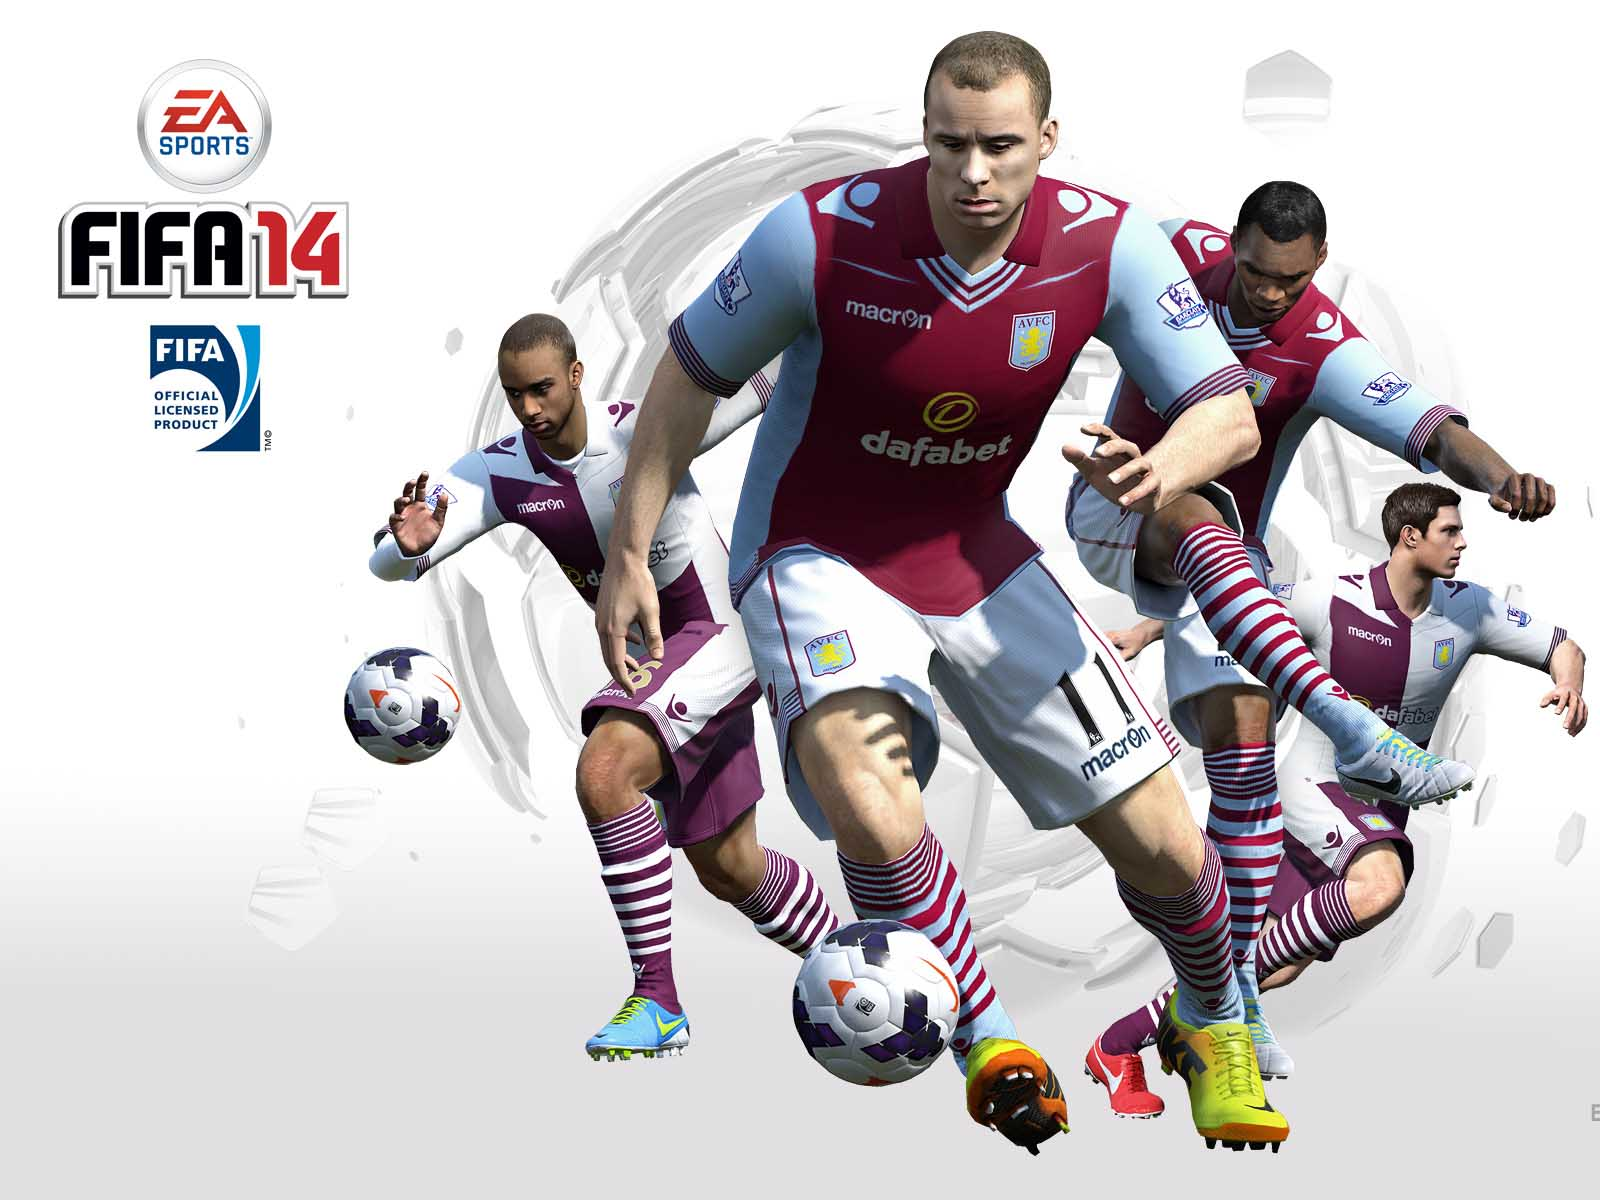 Fifa 14 wallpapers all official fifa 14 wallpapers in a single place fifa 14 wallpapers all the official fifa 14 wallpapers in a single place voltagebd Images